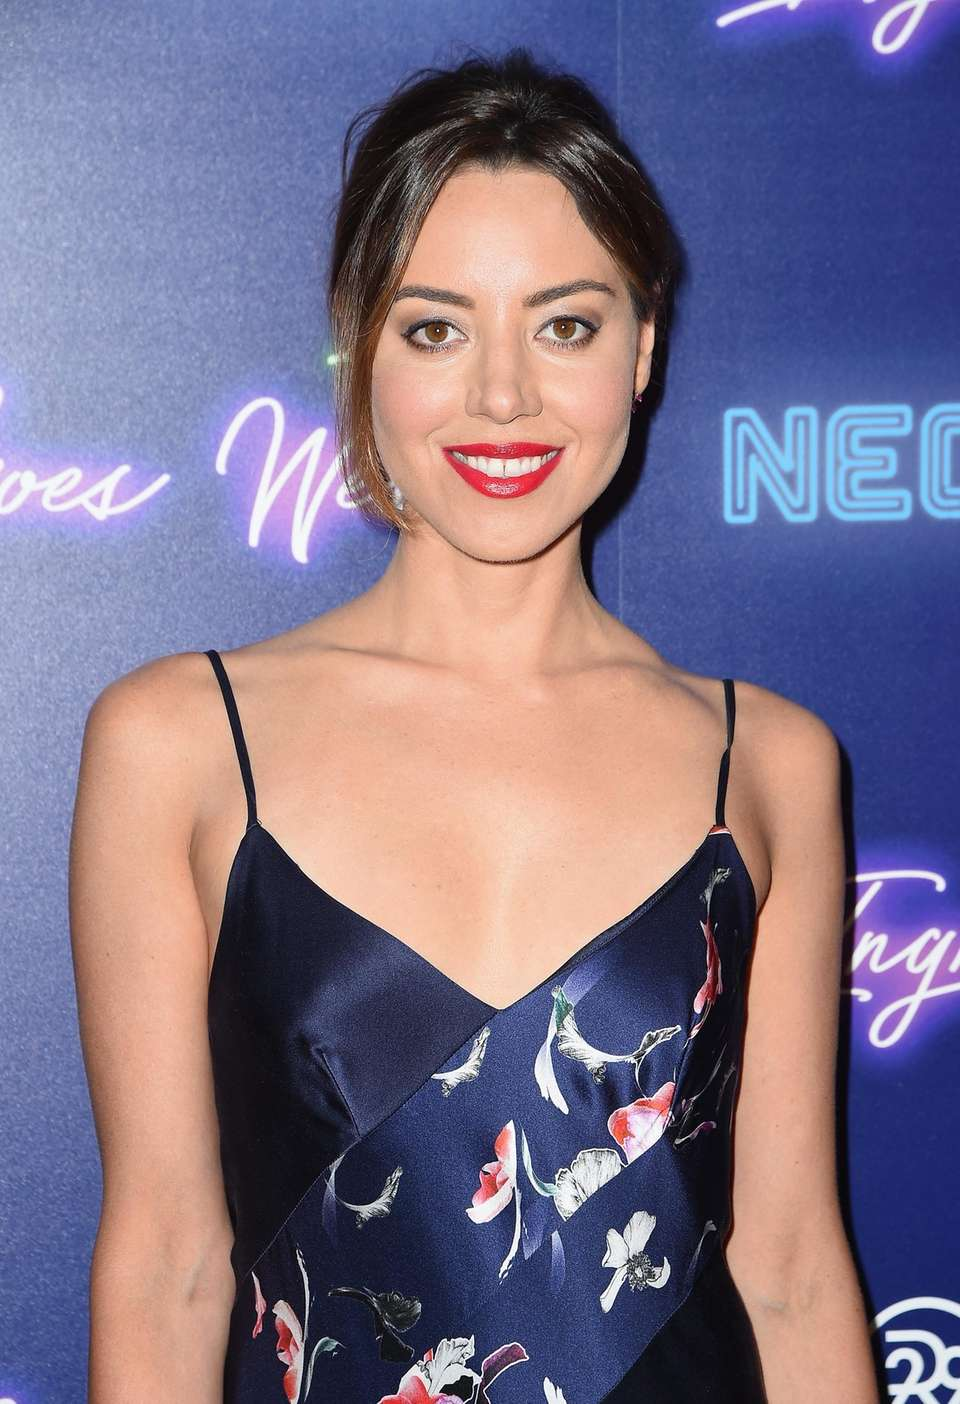 Aubrey Plaza attends the New York premiere of